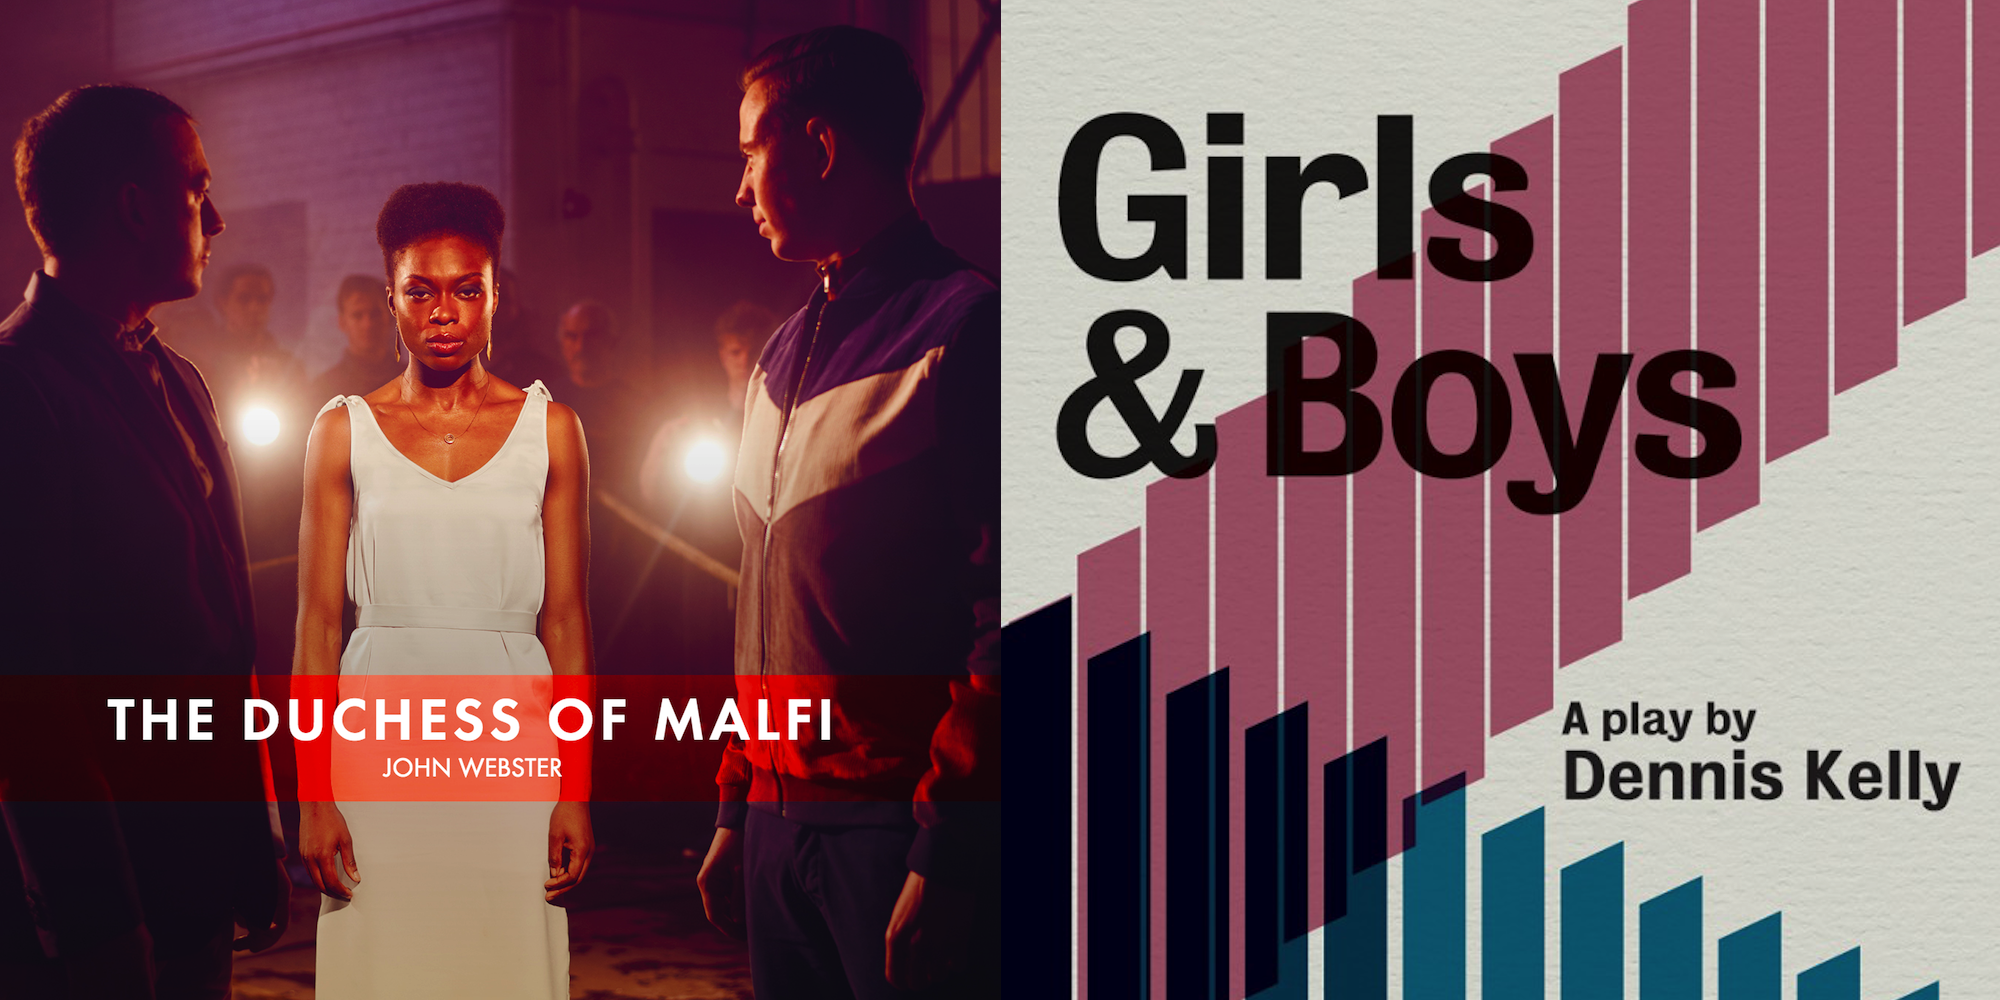 © RSC,  The Duchess of Malfi  (Image Left); Royal Court,  Girls & Boys  (Image Right)